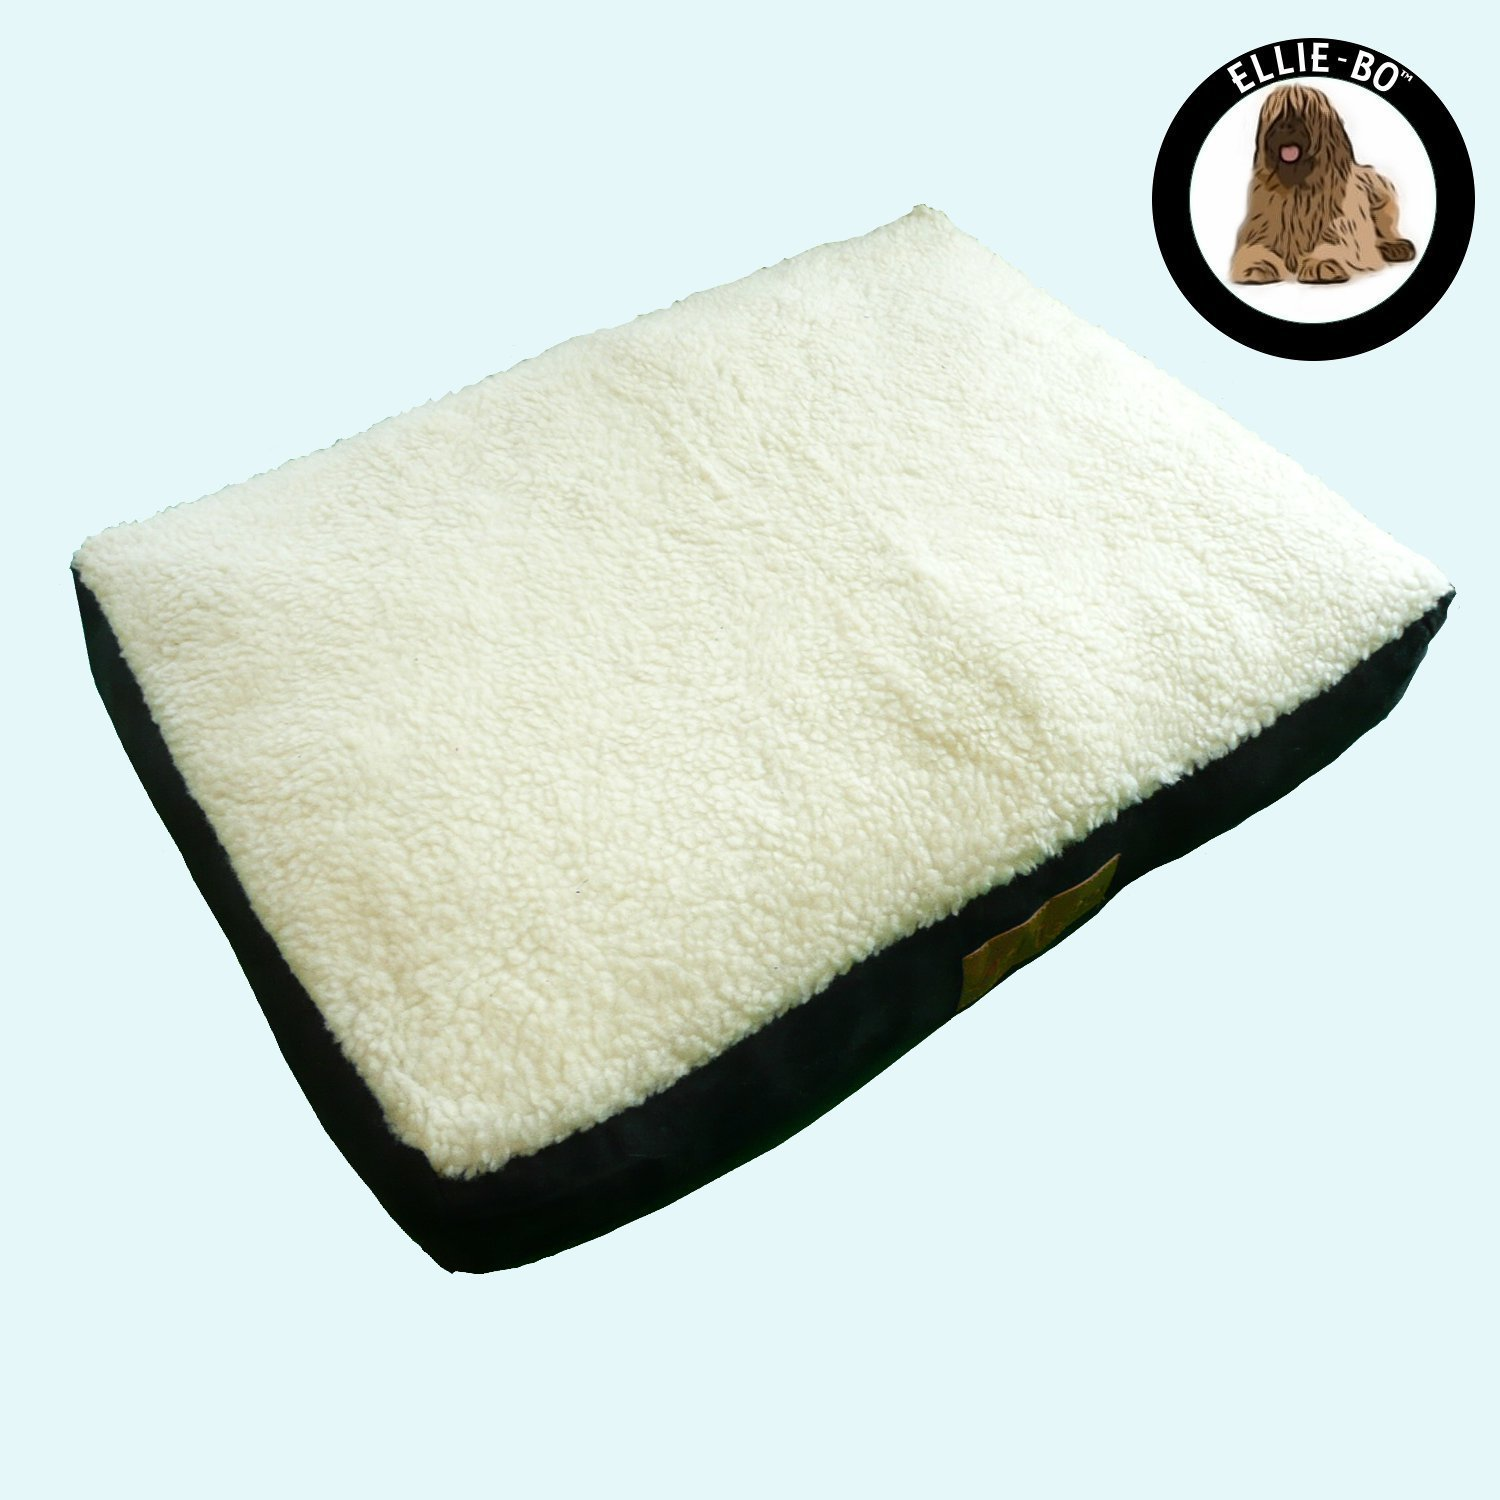 Ellie-Bo Jumbo Dog Bed with Faux Suede and Sheepskin Topping, 152 x 100 cm, Black